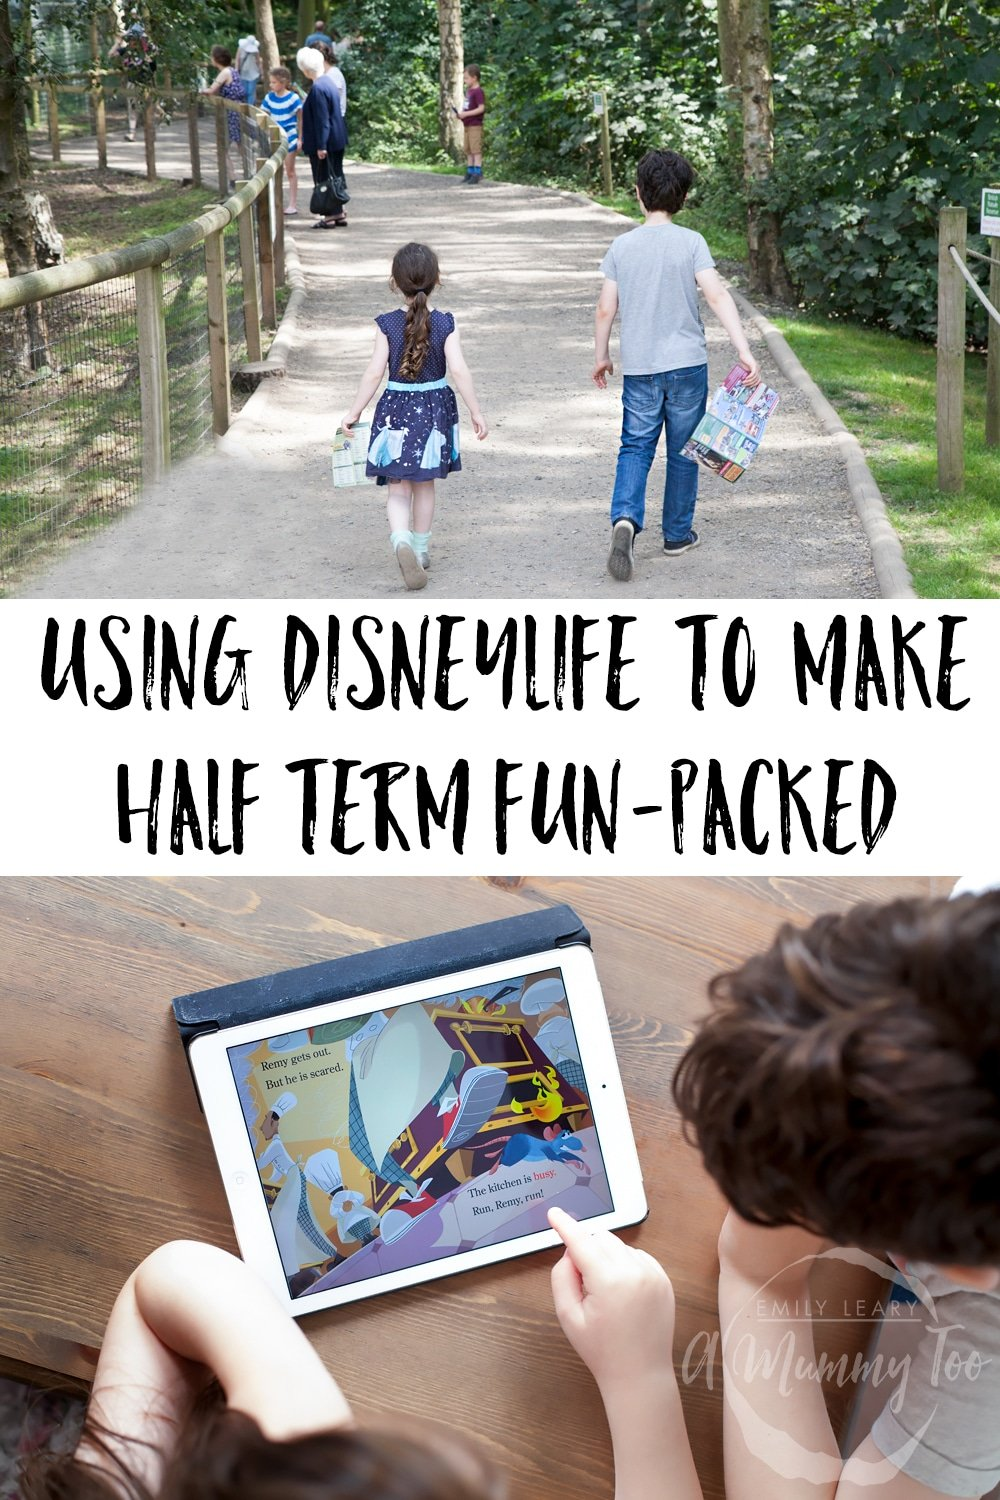 disneylife-half-term-fun-packed